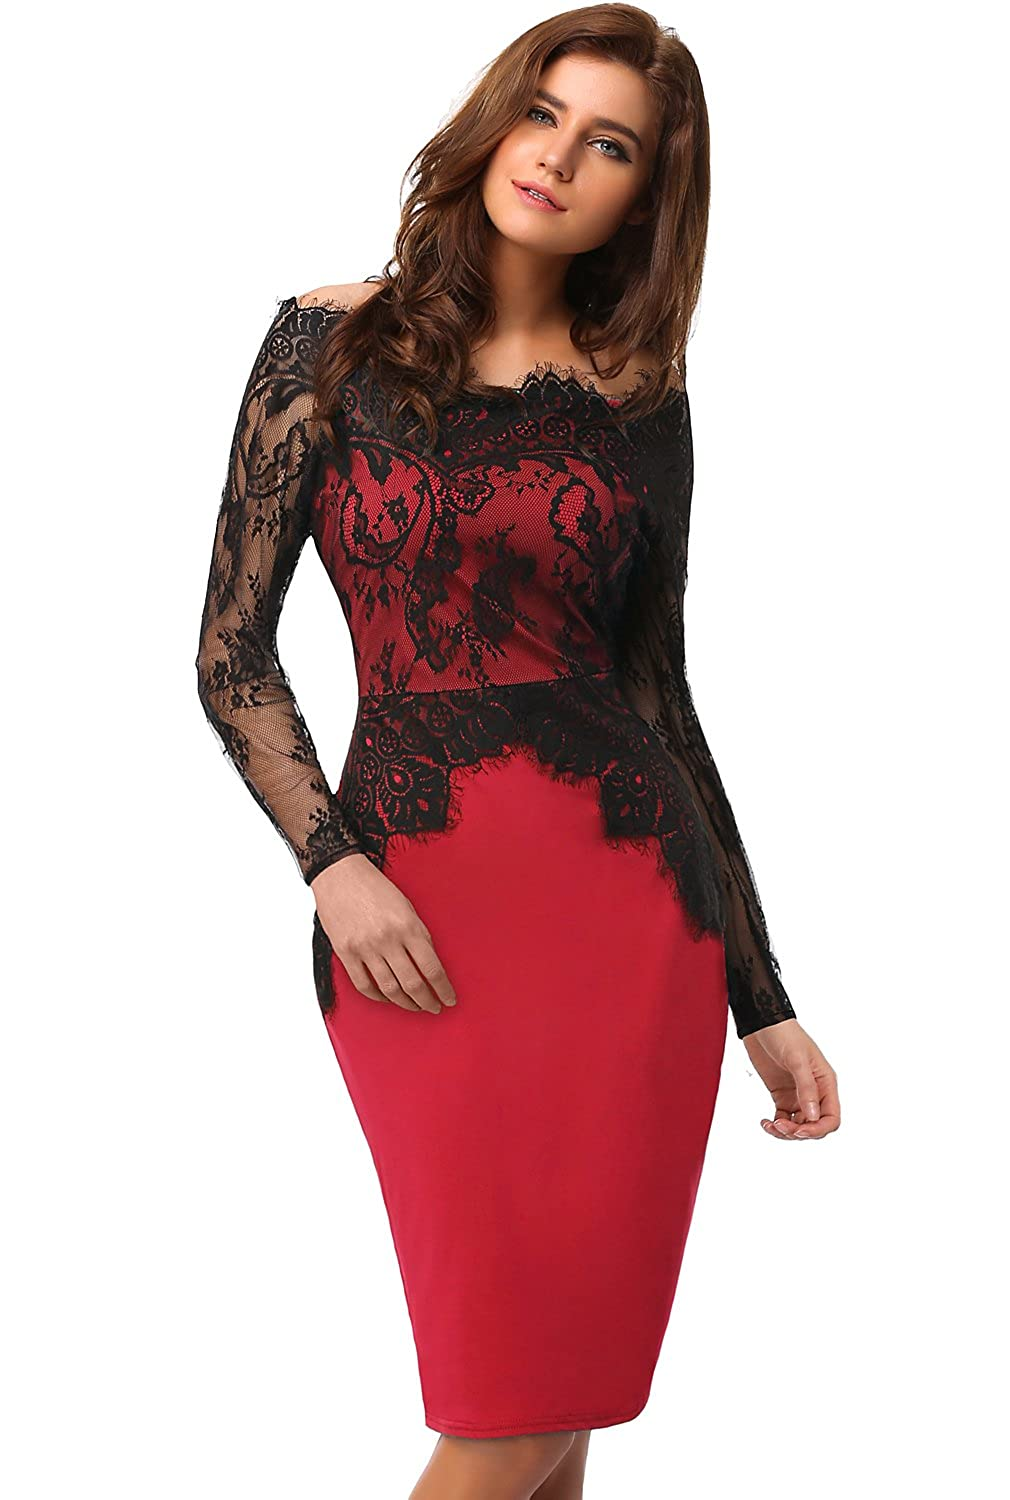 EA Selection Womens Sexy Lace Off Shoulder Long Sleeve Evening Party Dress